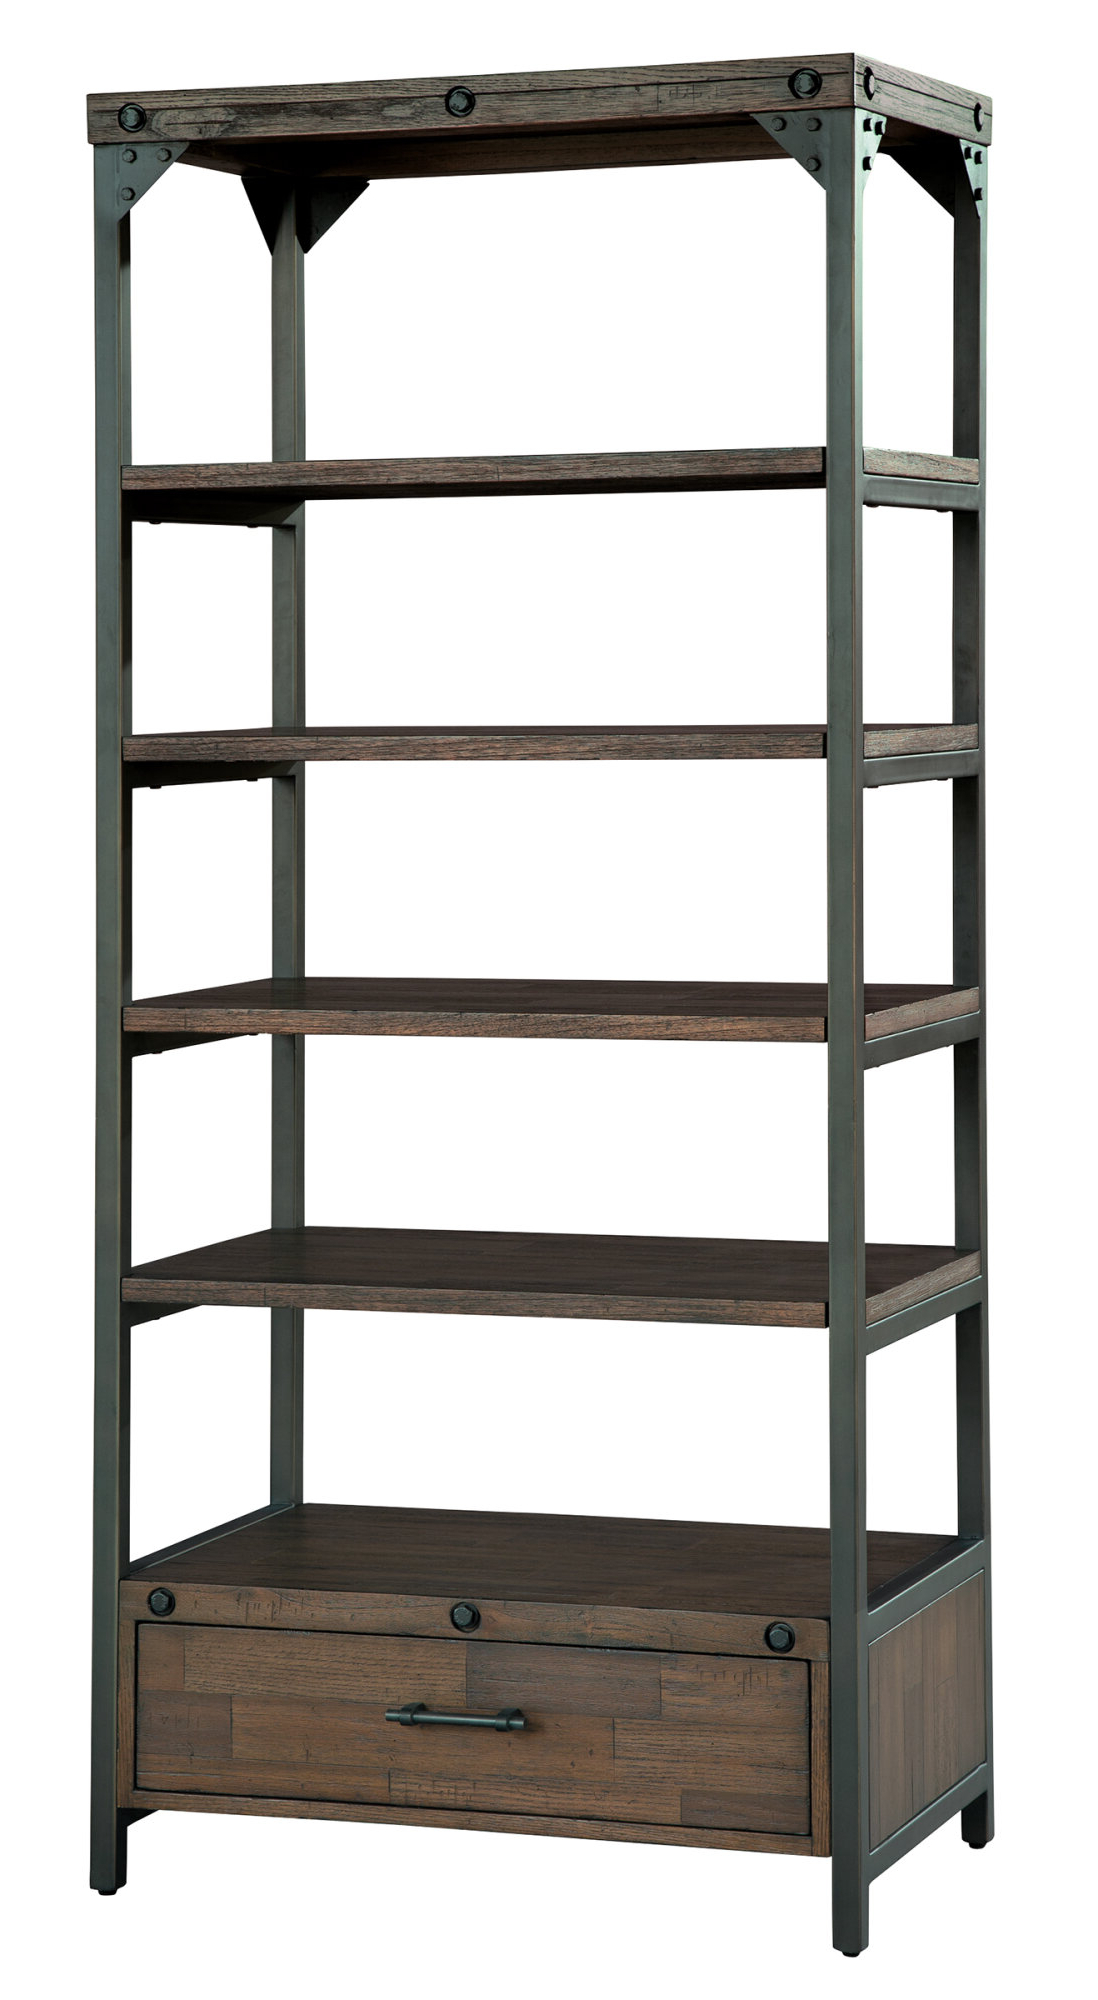 Etagere Wood Bookcases You'll Love In  (View 4 of 20)